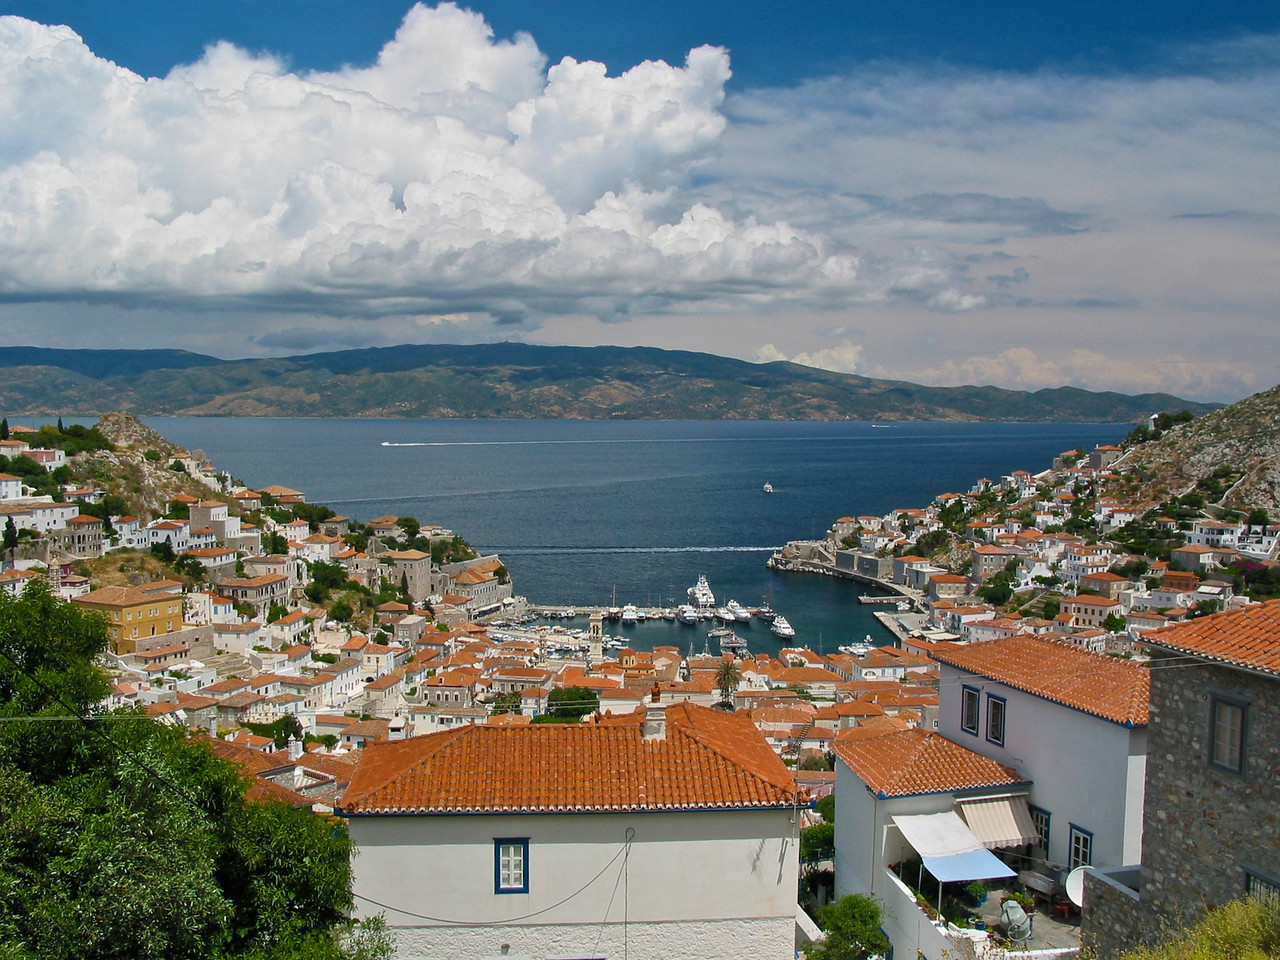 From the Convent, you can look down on Hydra town and the port.